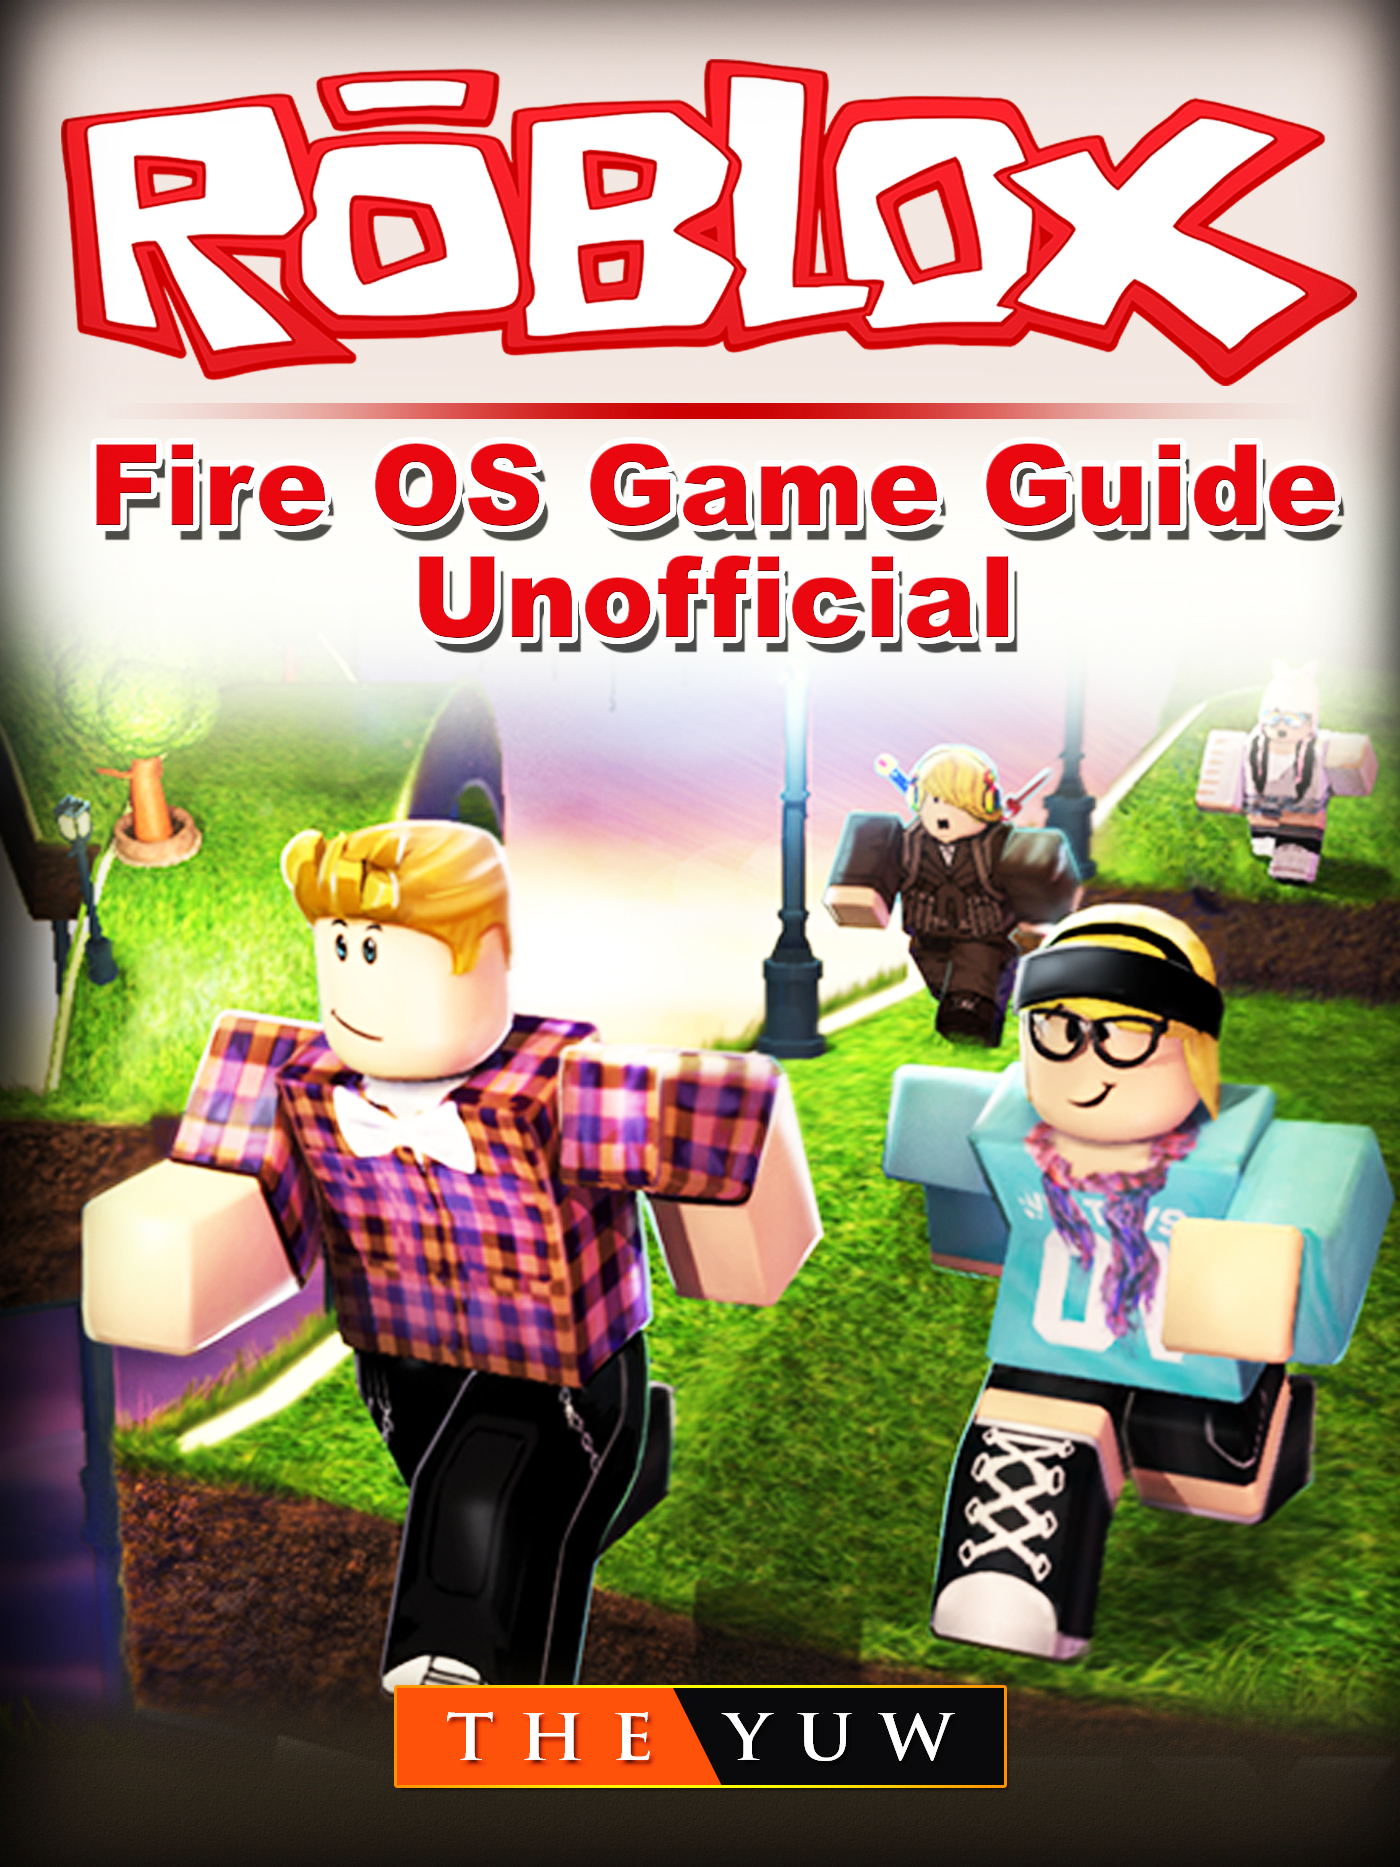 Roblox Kindle Fire OS Game Guide Unofficial By The Yuw